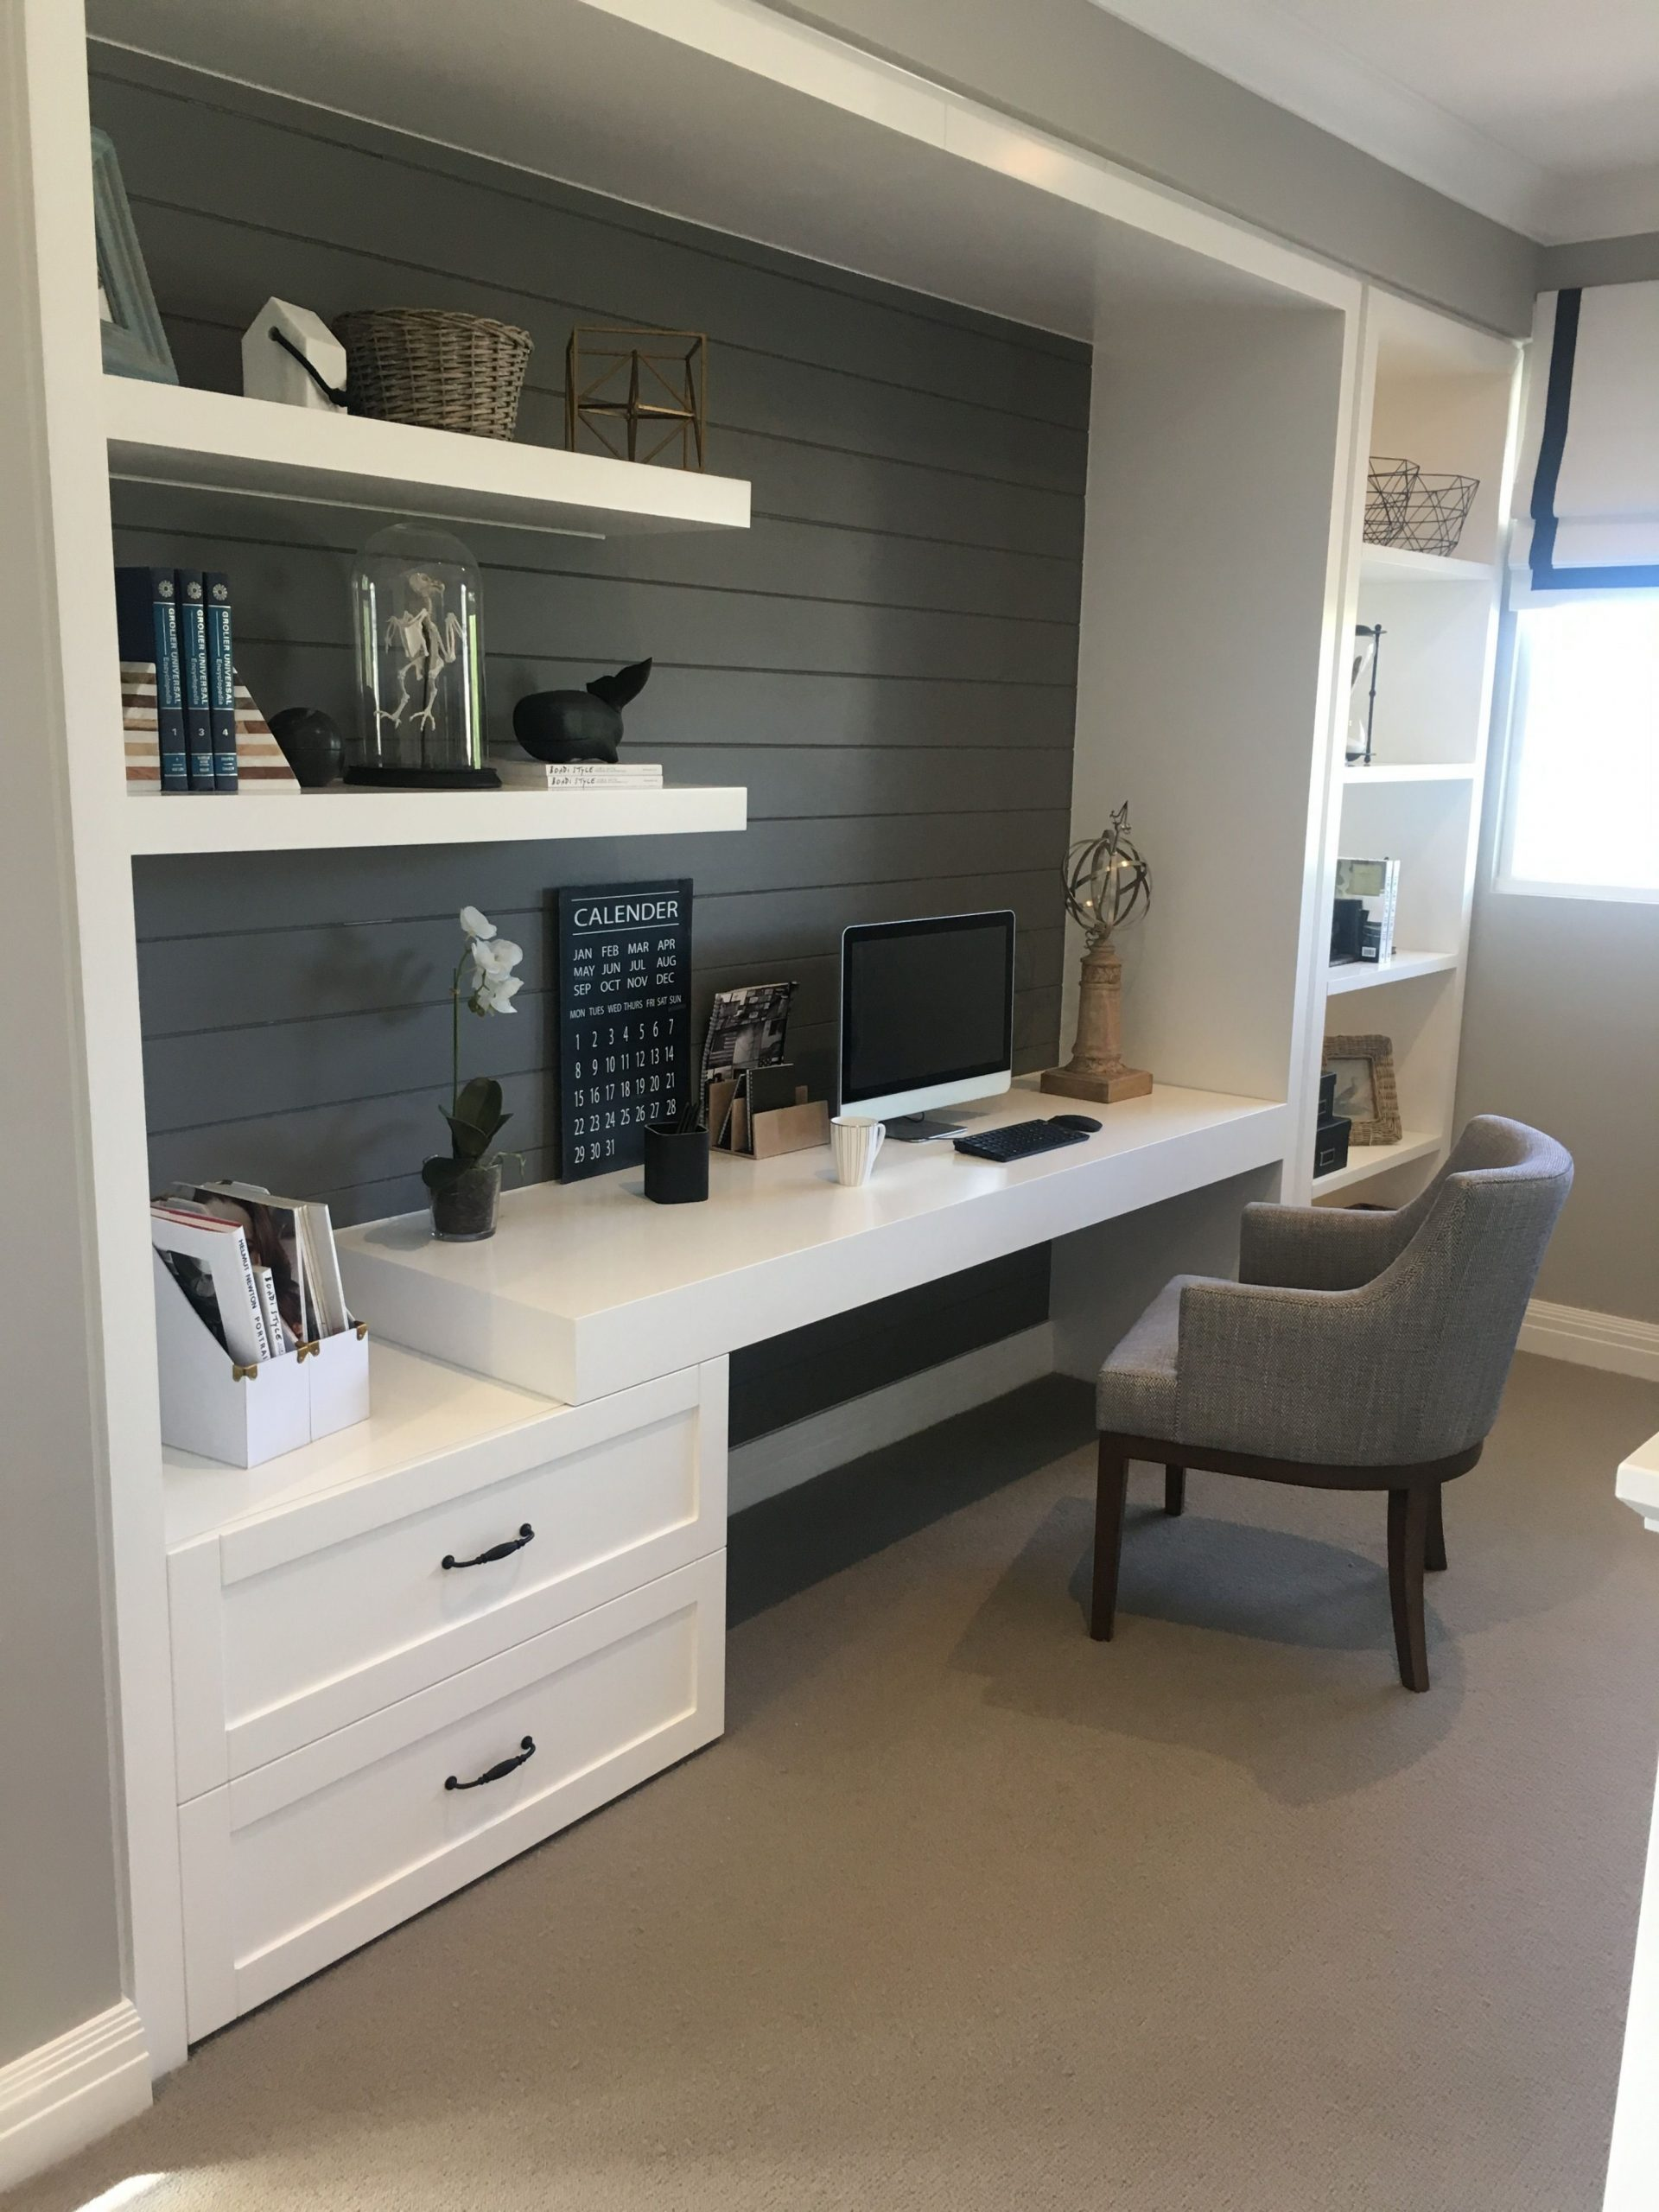 Working From Home – Five Home Office Ideas for Running a Business  - Home Office Business Ideas